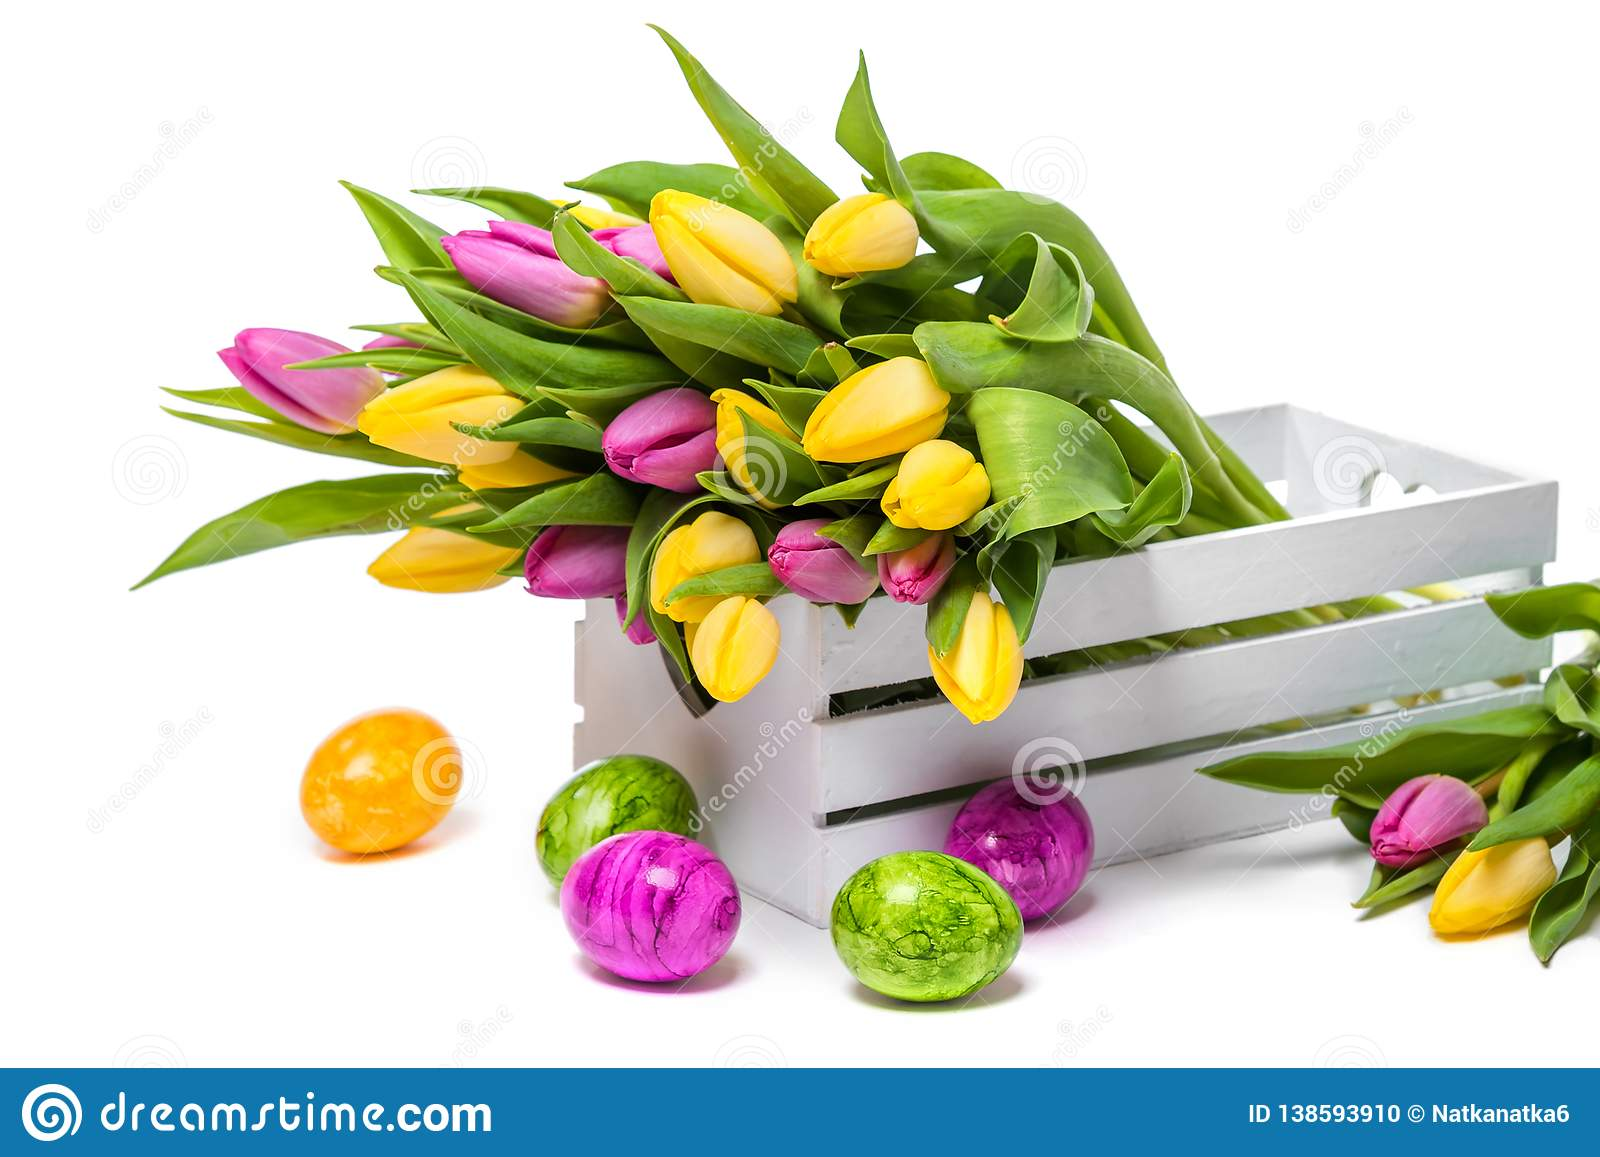 Easter eggs and a bunch of colorful tulips in a white wooden box on a white background